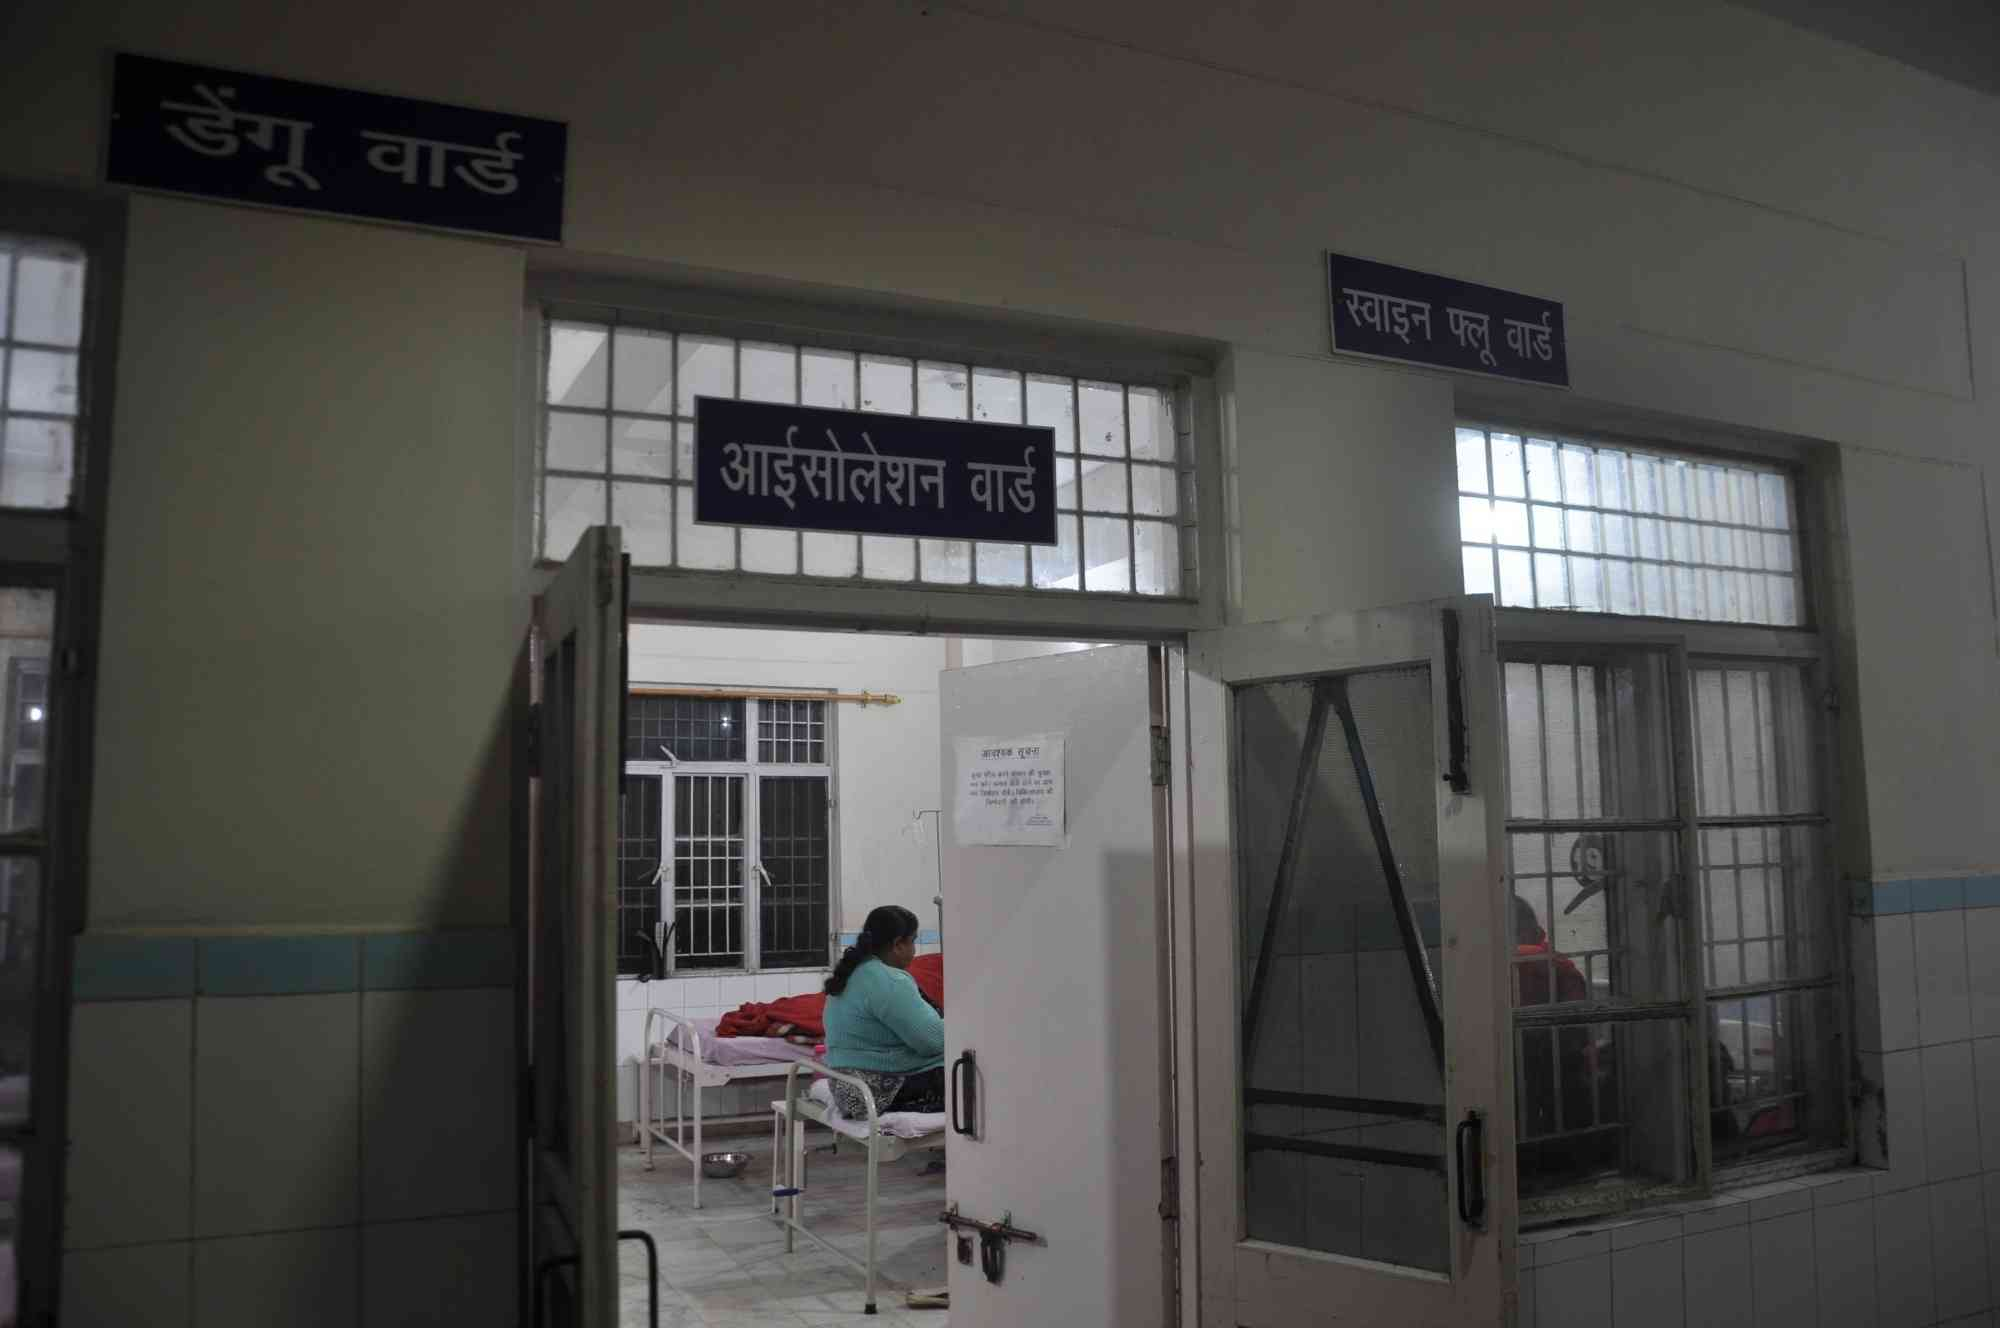 An isolation ward for swine flu patients at Coronation hospital in Dehradun, Uttarakhand. (Photo credit: IANS).